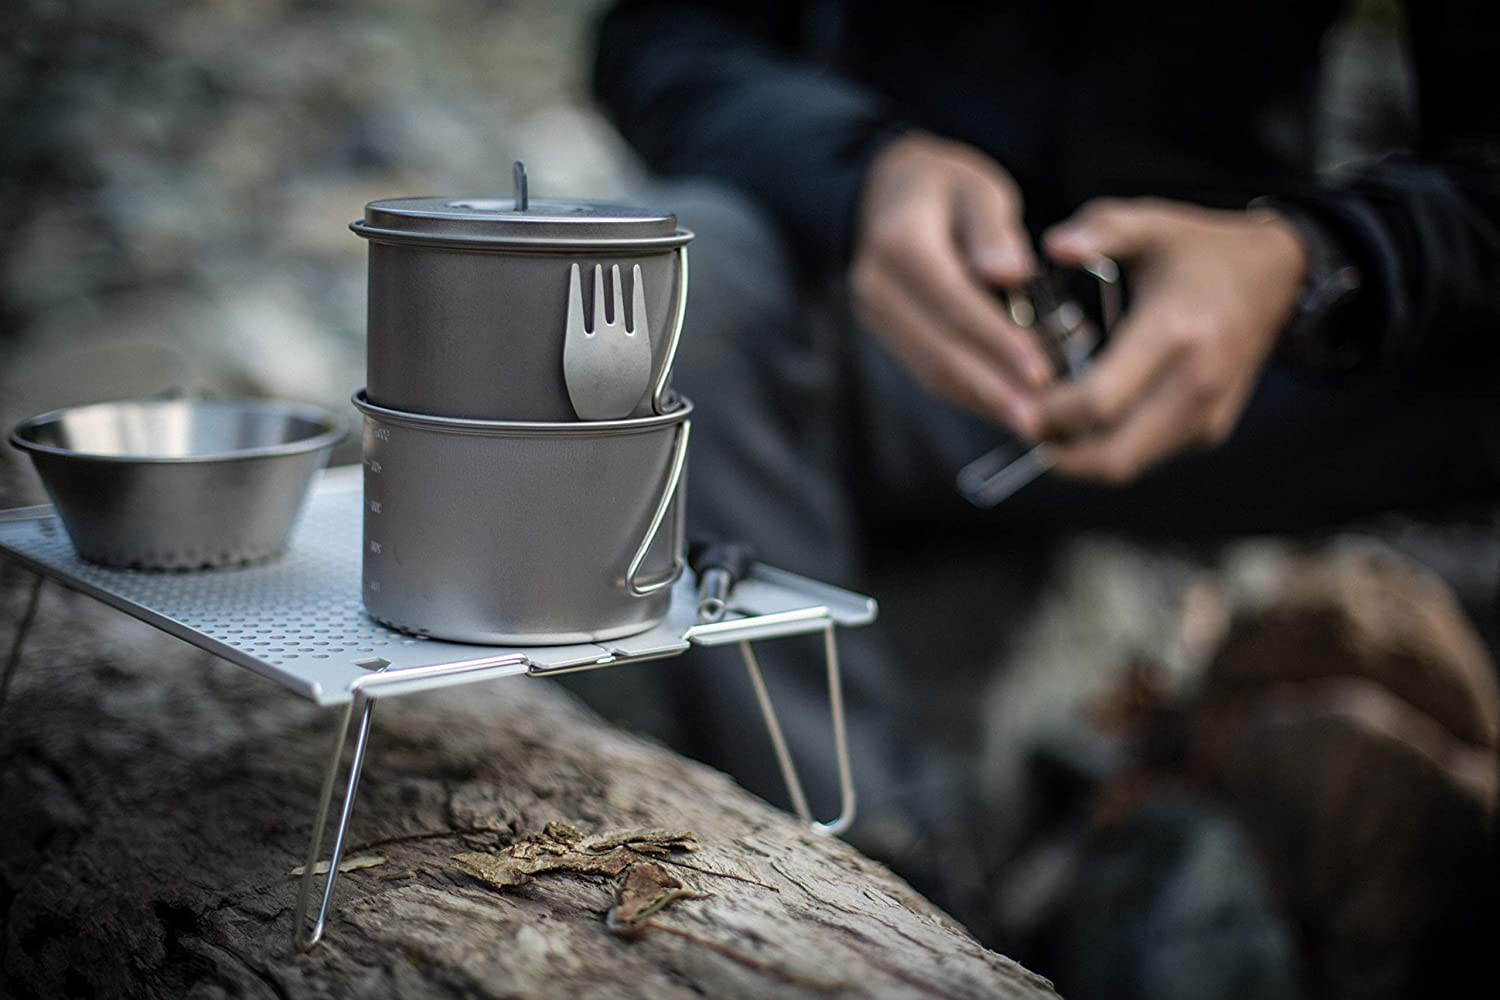 Japanese Titanium Made in Japan Lifetime Product Guarantee Ultralight and Compact for Camping and Backpacking SCS-0044TR Snow Peak Titanium Mini Solo